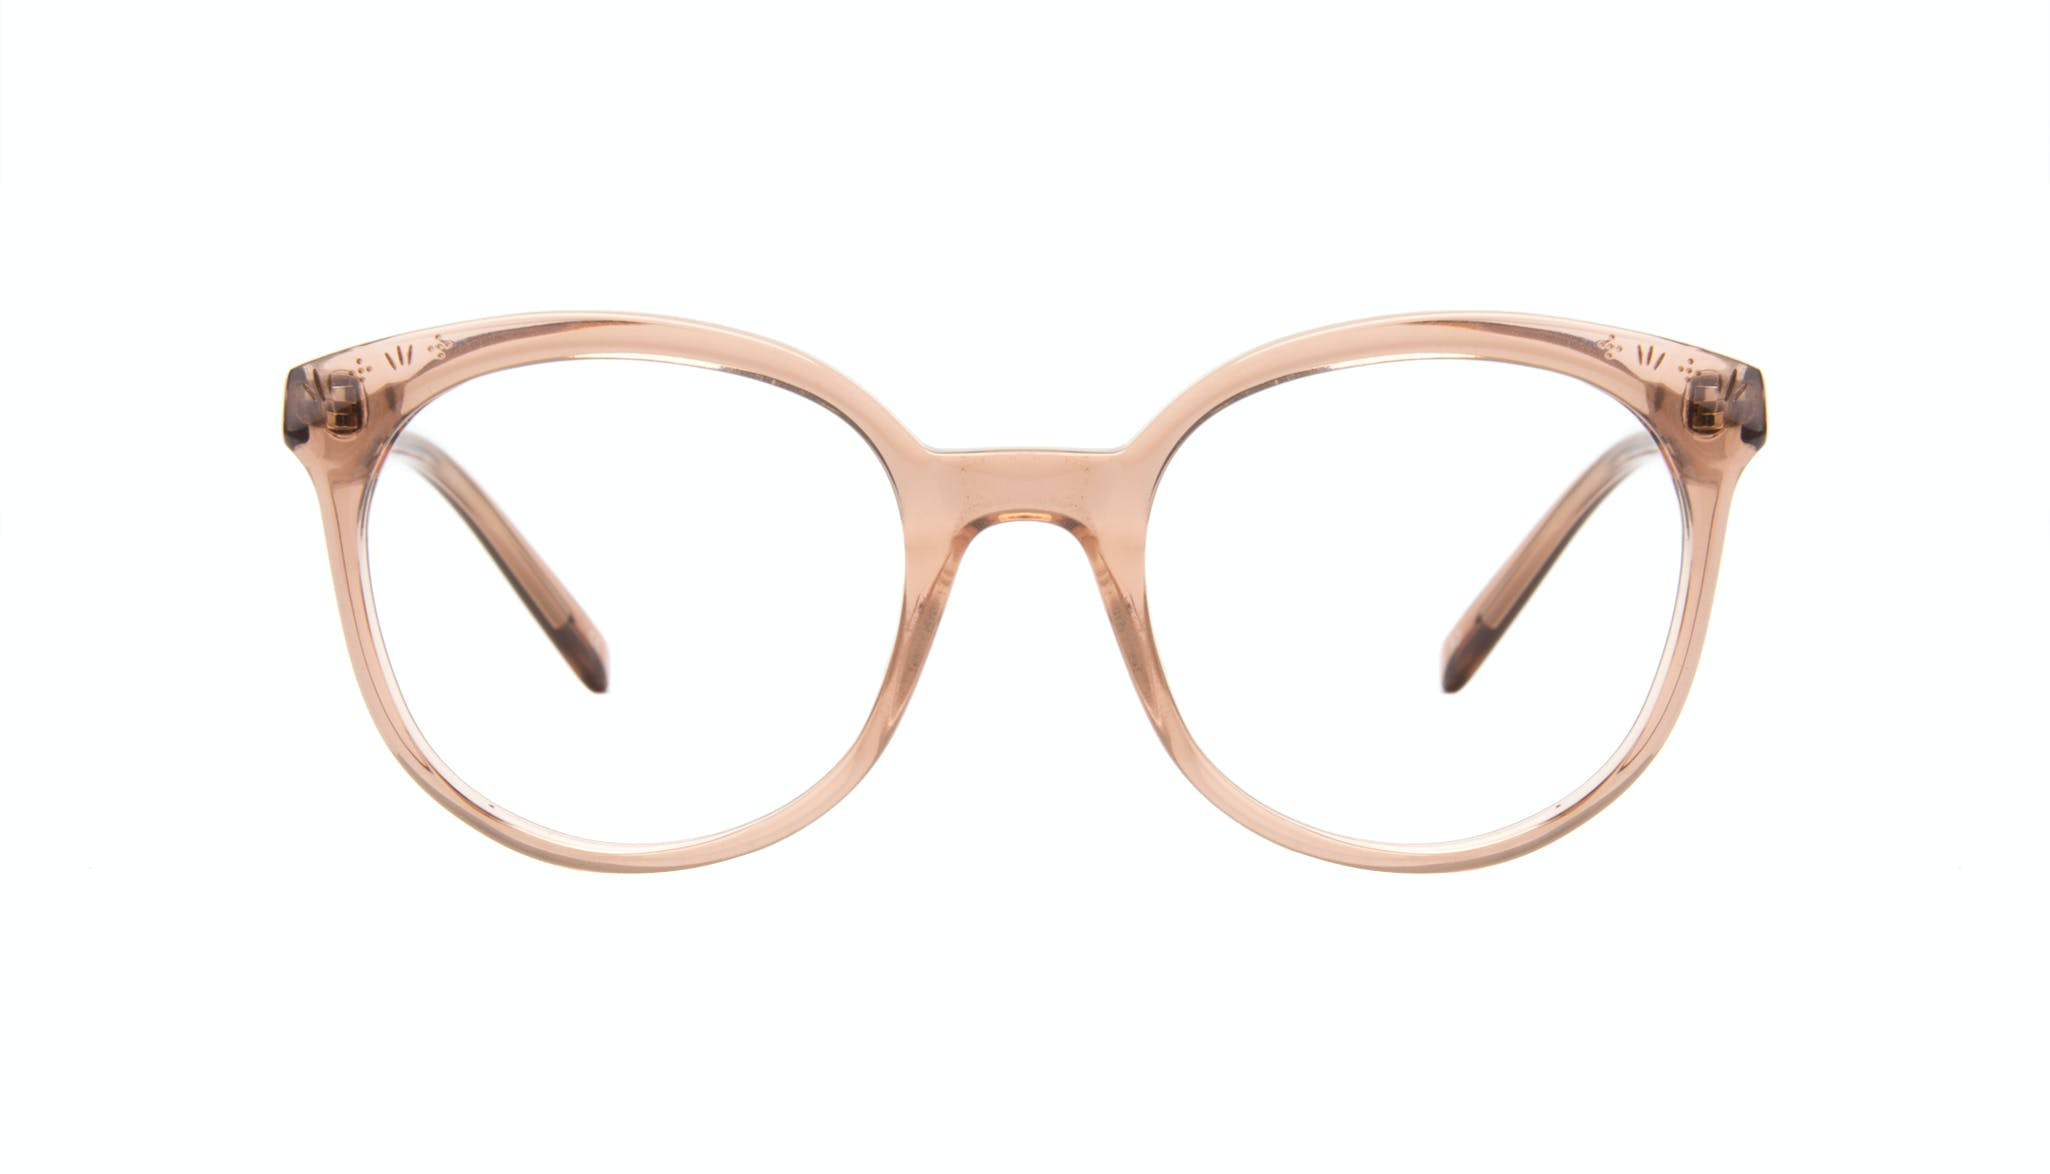 Affordable Fashion Glasses Round Eyeglasses Women Must Rose Front